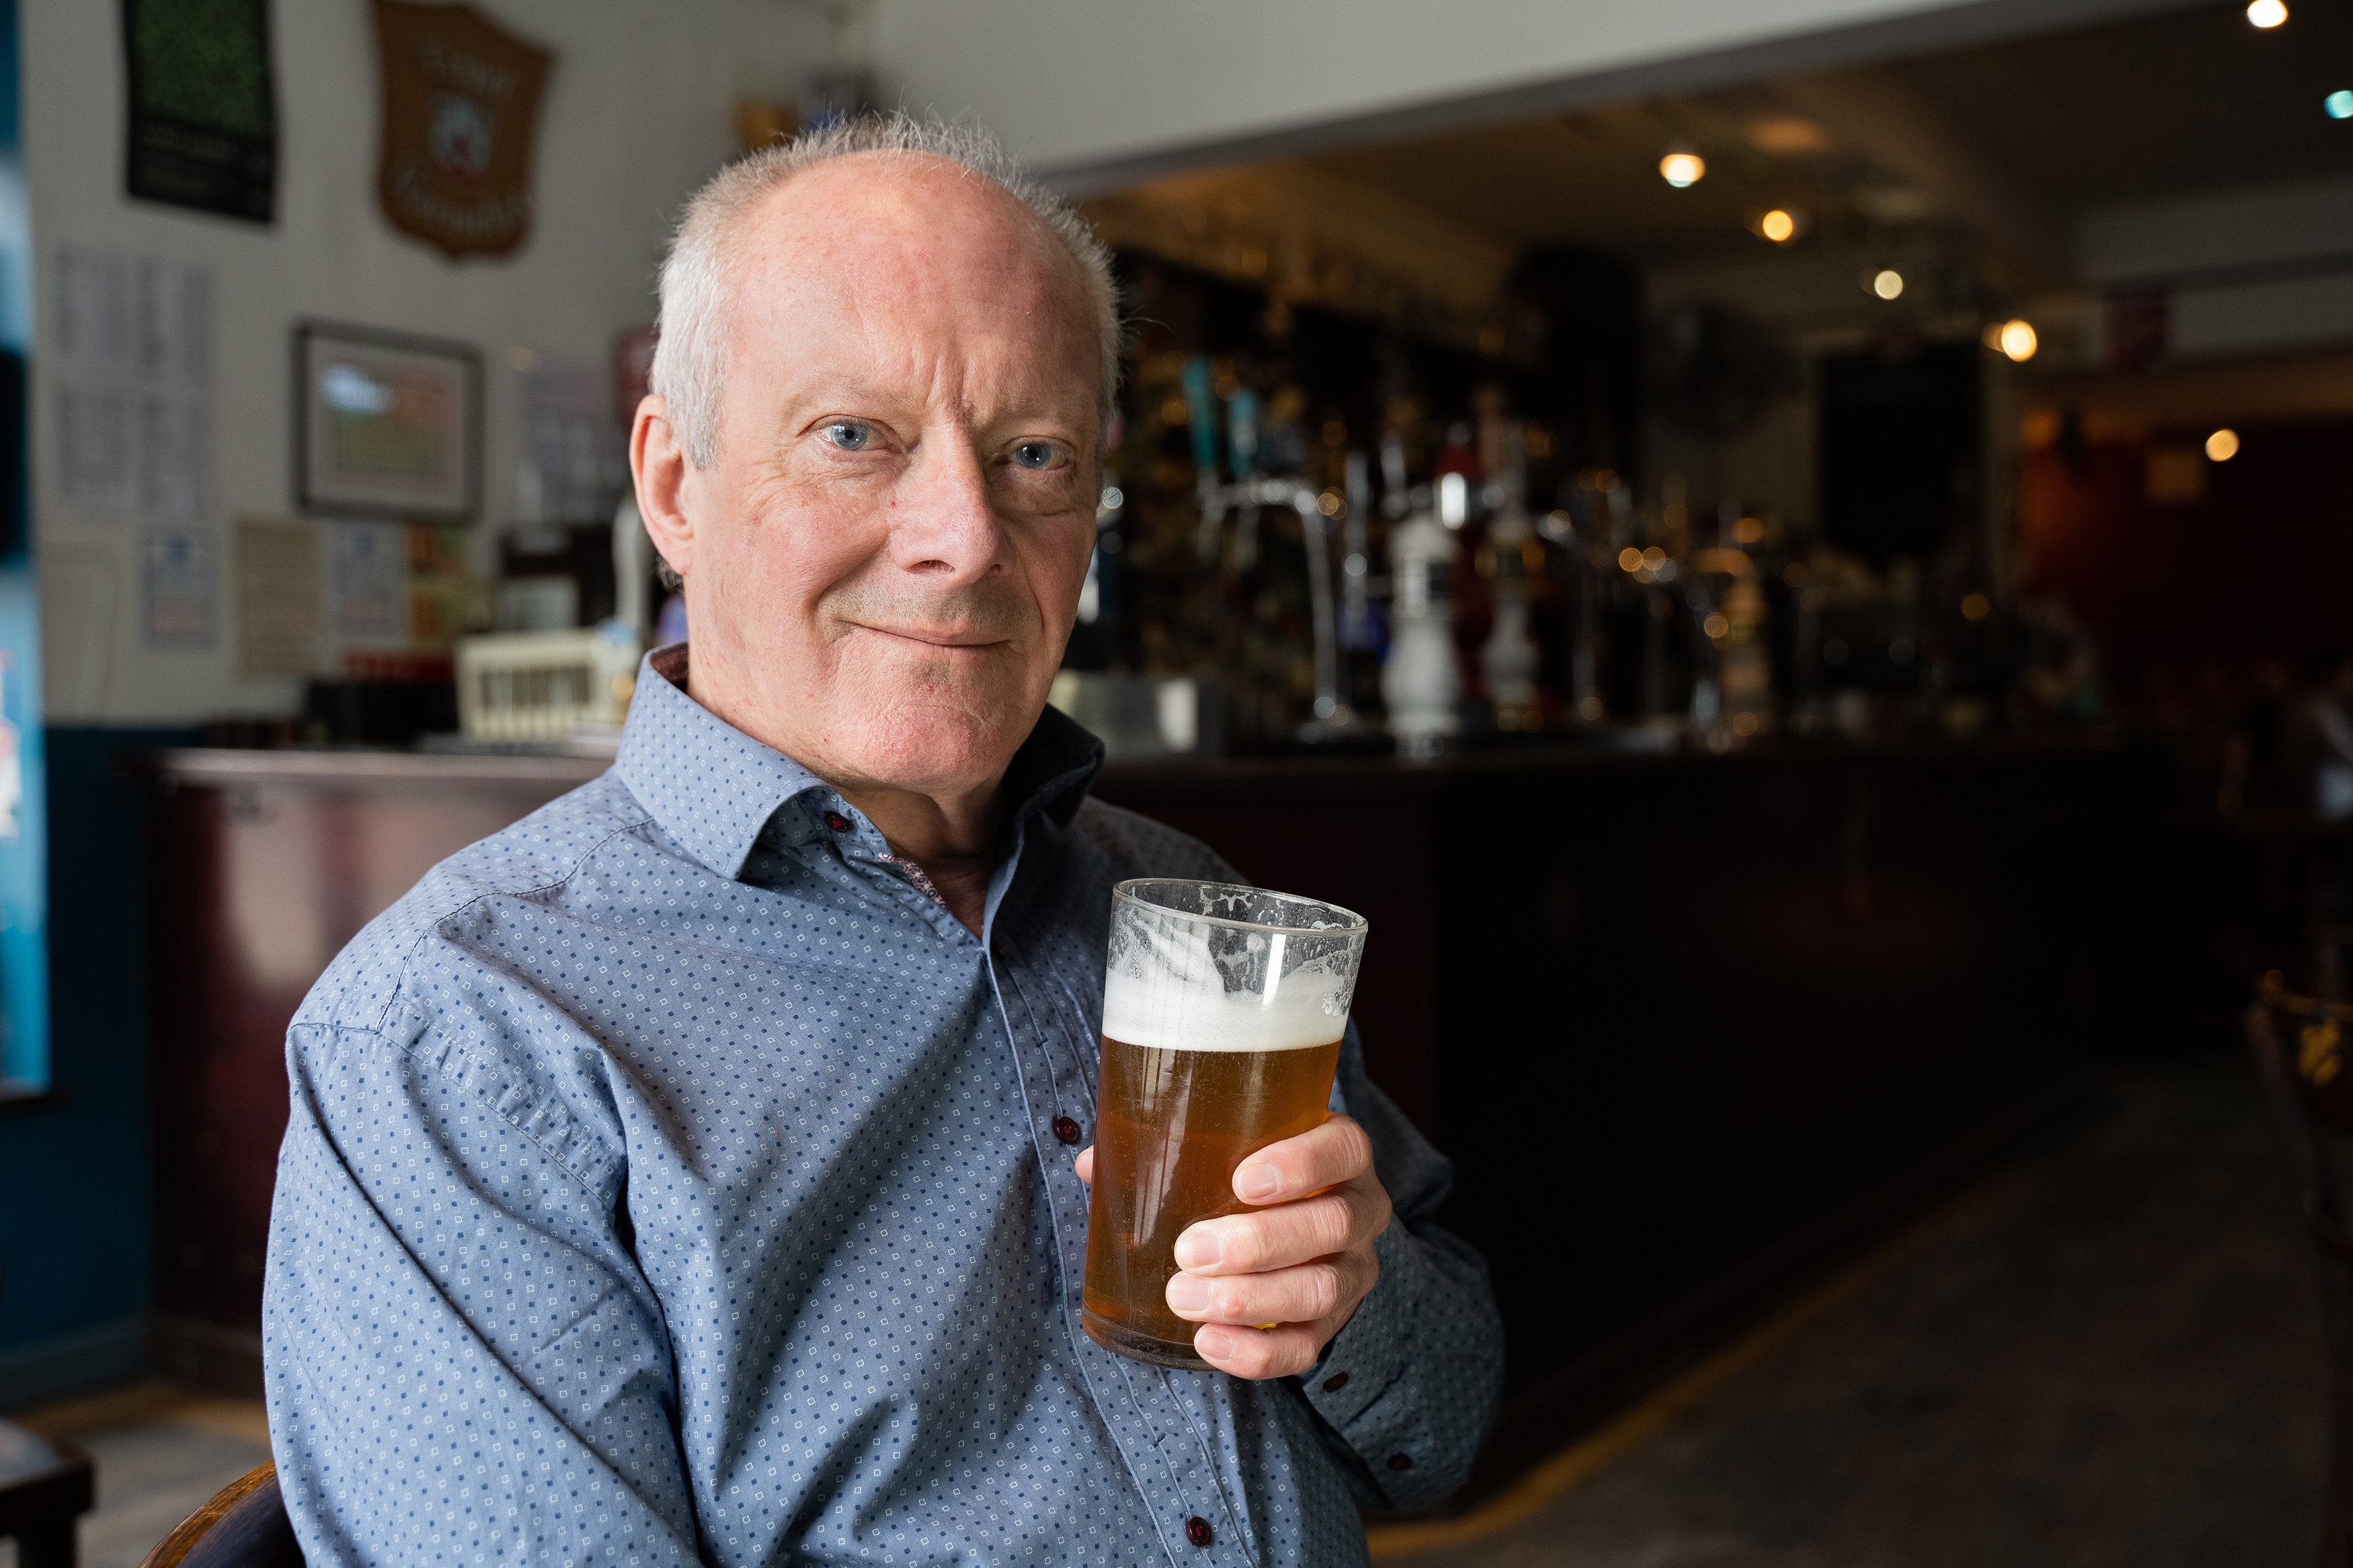 He has visited more than 50,000 pubs over five decades. Credit: Kennedy News and Media